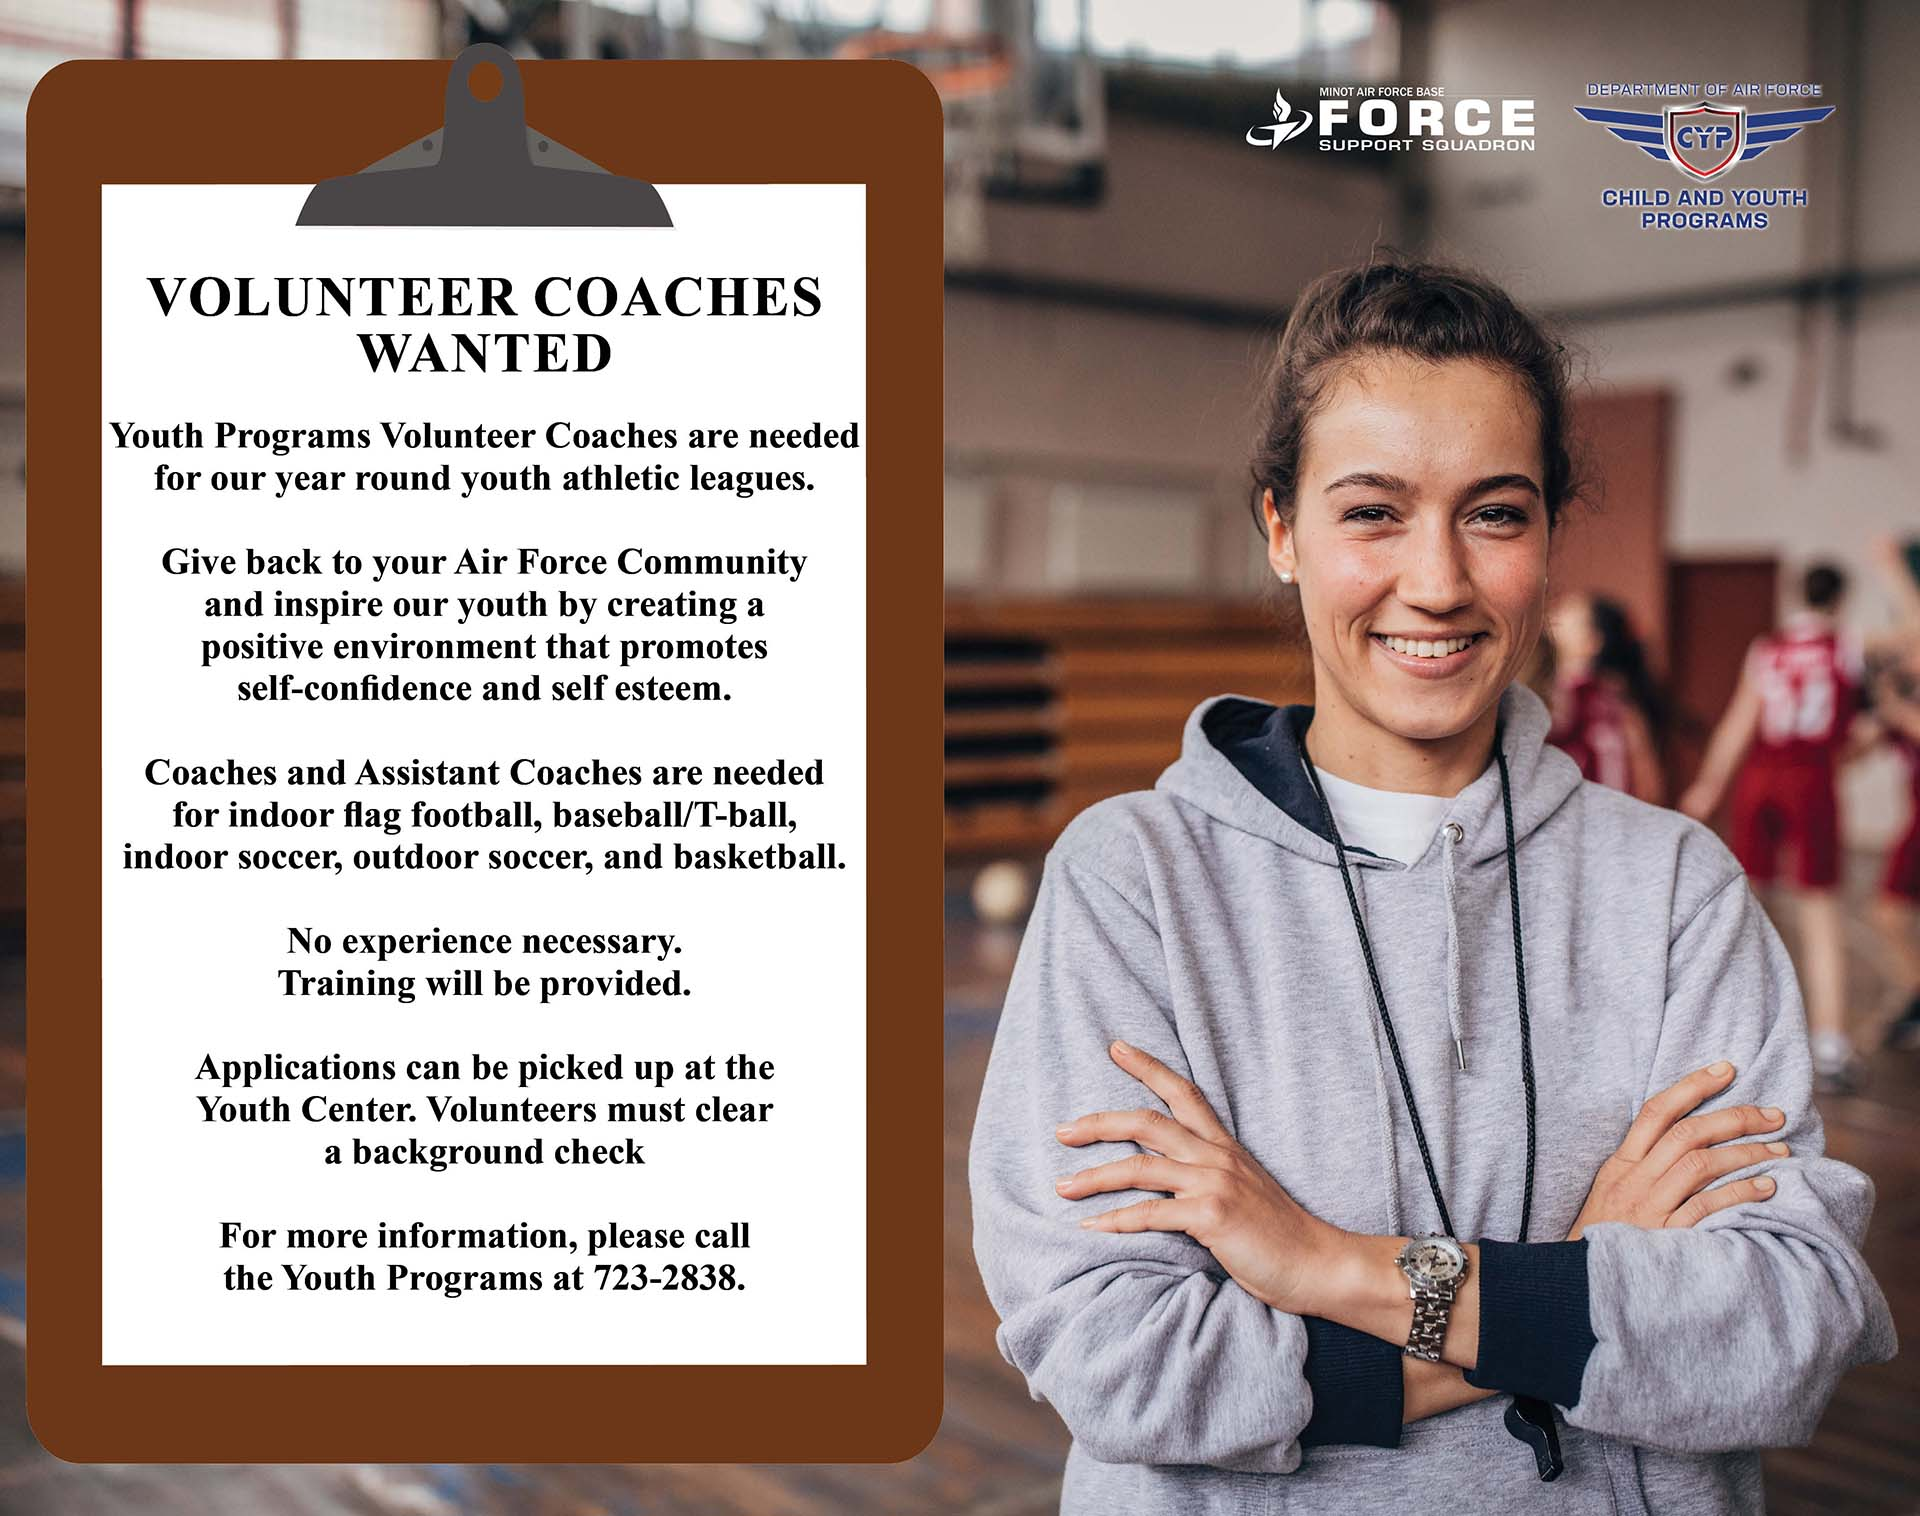 Youth Center - Youth Programs Volunteer Coaches